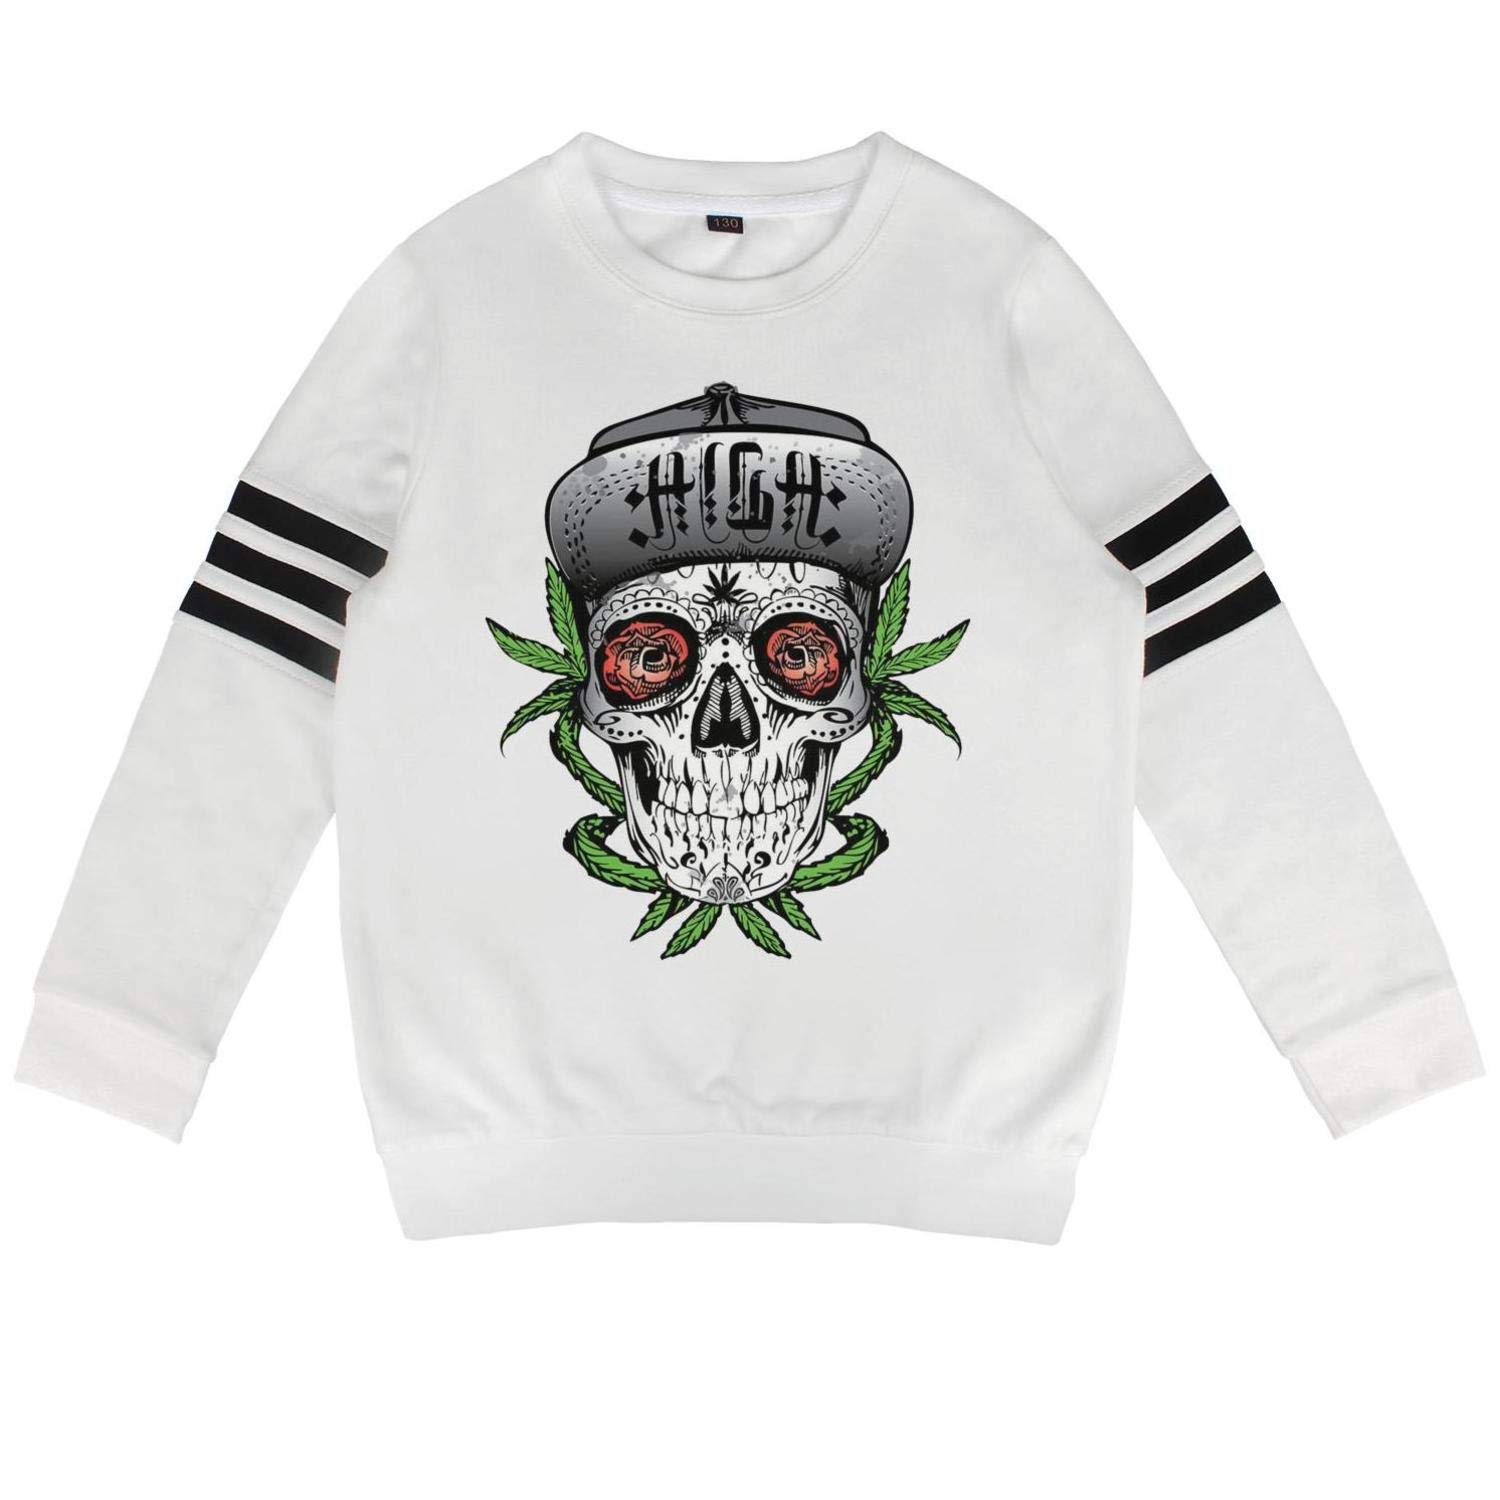 Cannabis Anxiety Skull1 L(67) Daylight Toddler Crewneck Cotton Long Sleeve Sweatshirts Cannabis Warning Labels Hoody Sweatshirt for Boys and Girls